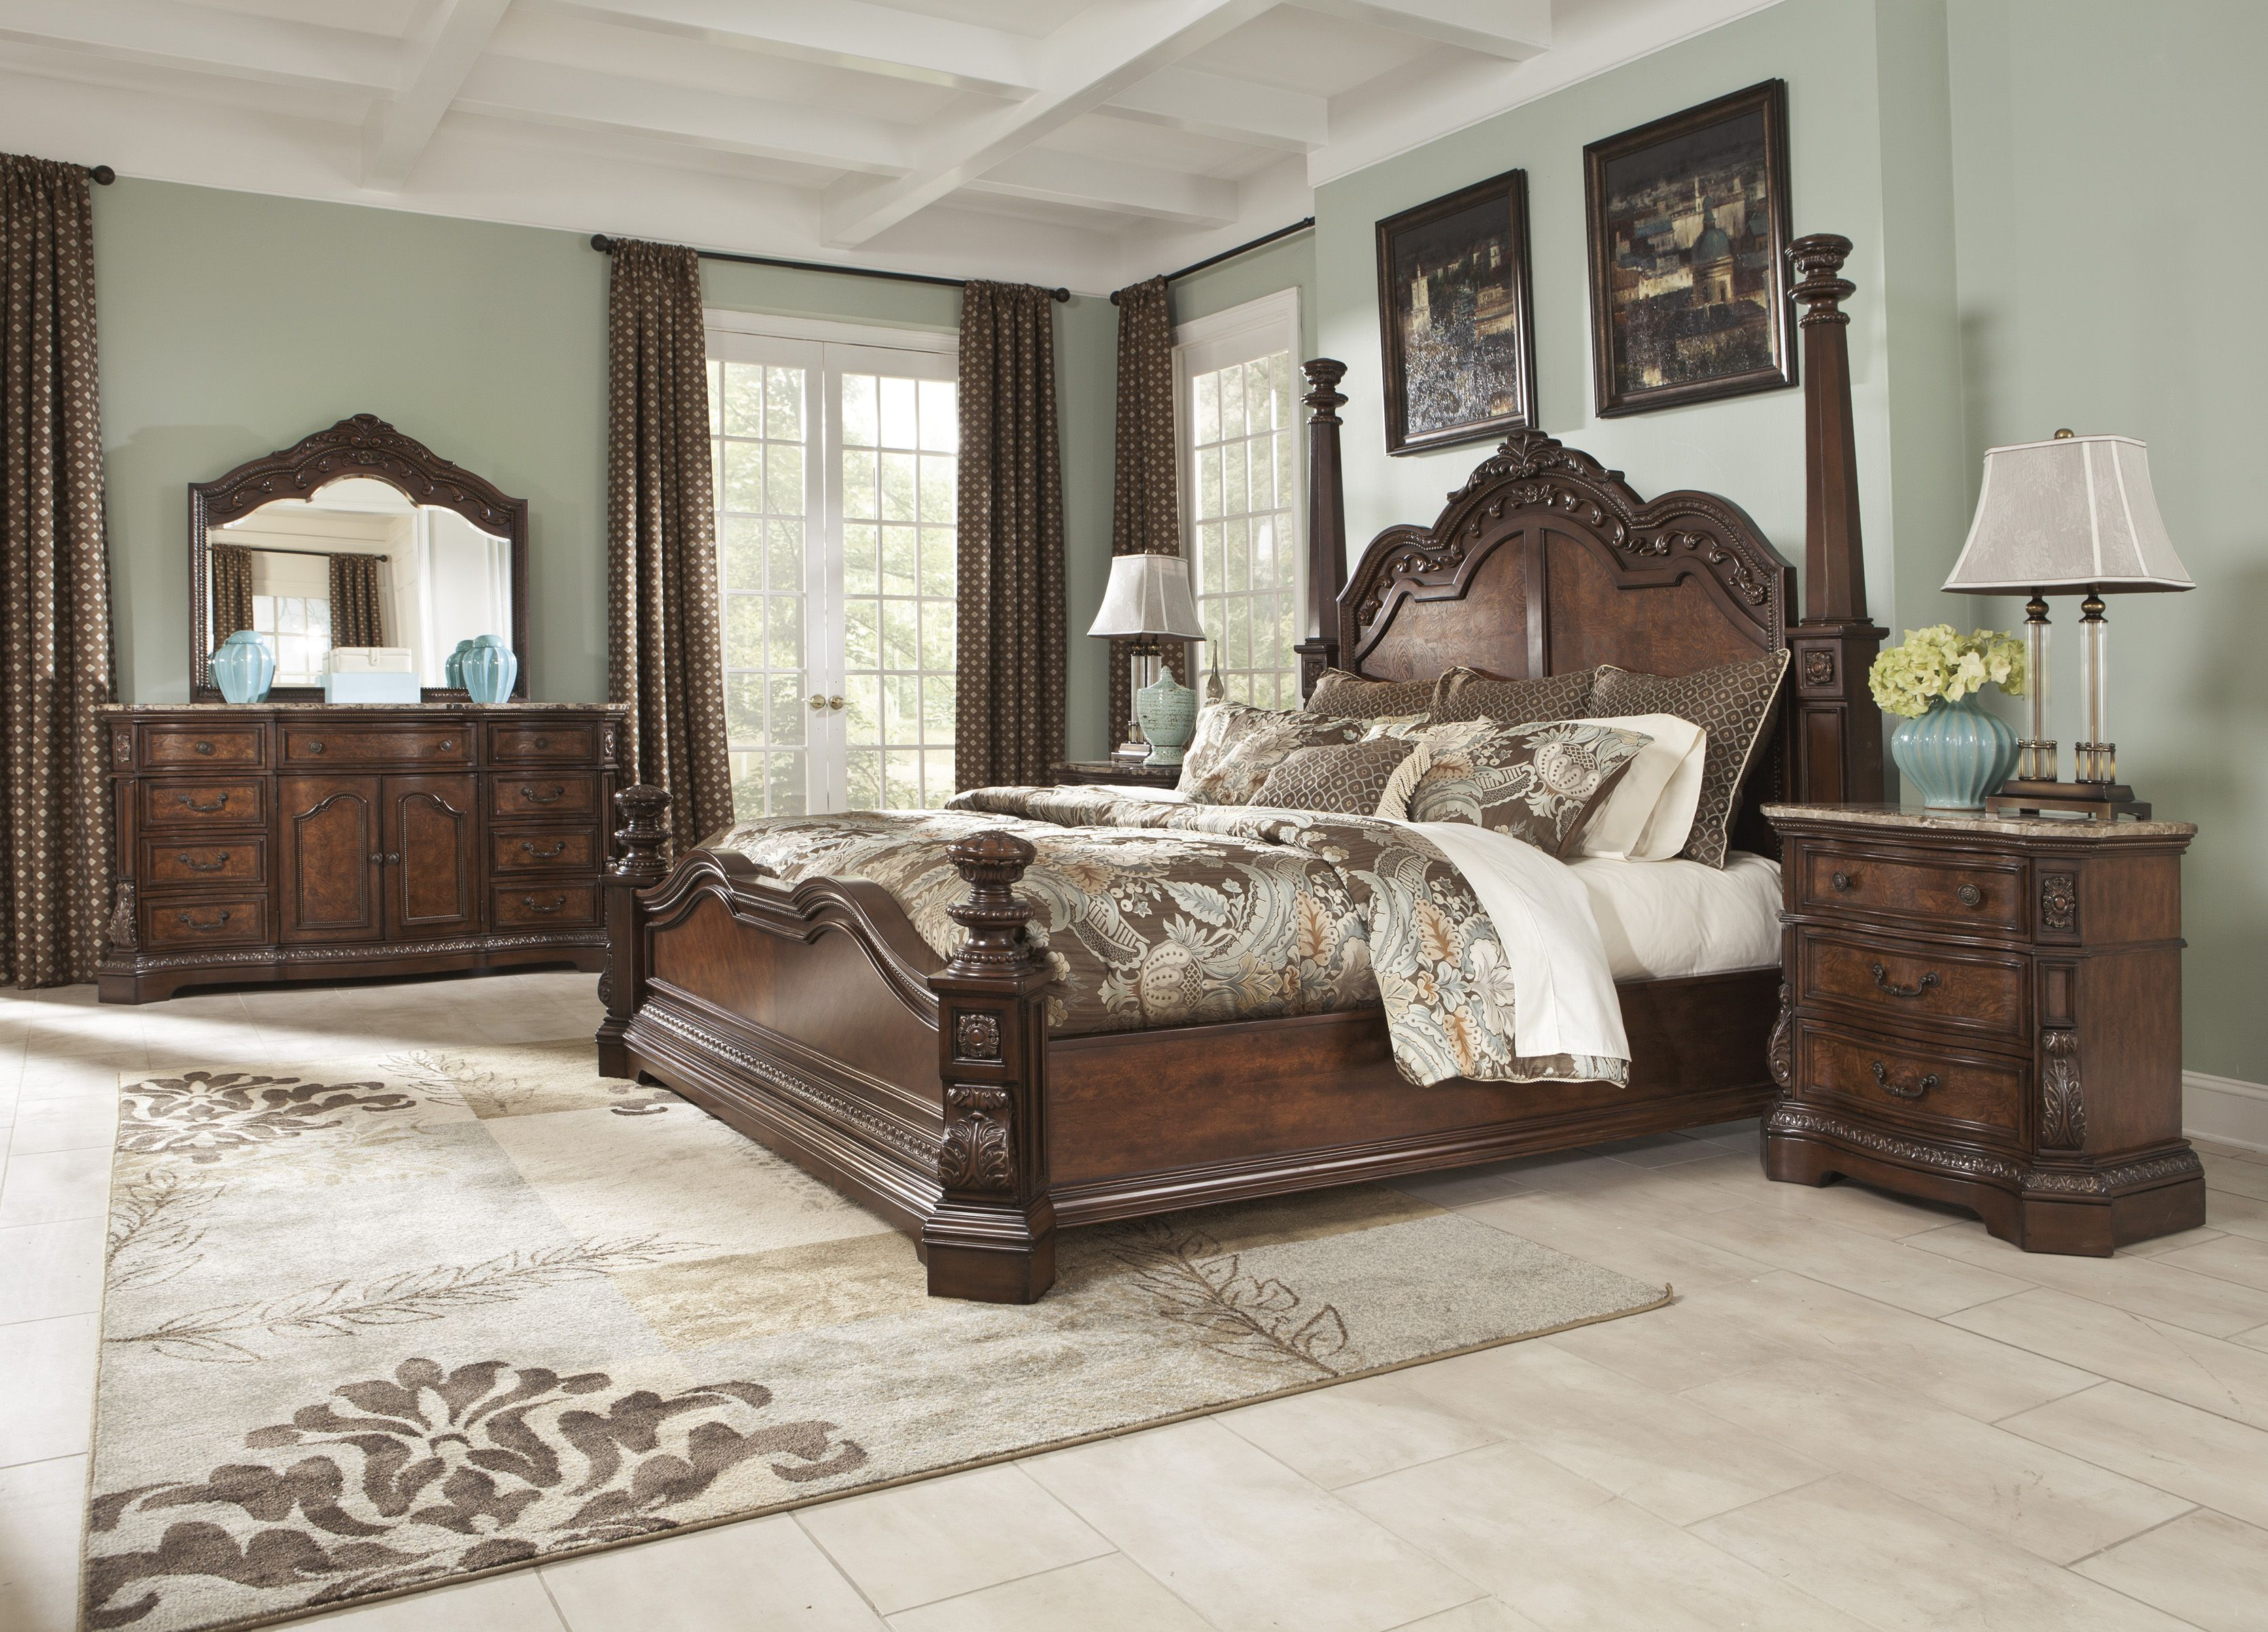 Ashley Ledelle King Bedroom Set Dream Rooms Furniture King Bedroom Sets Bedroom Set Bedroom Sets